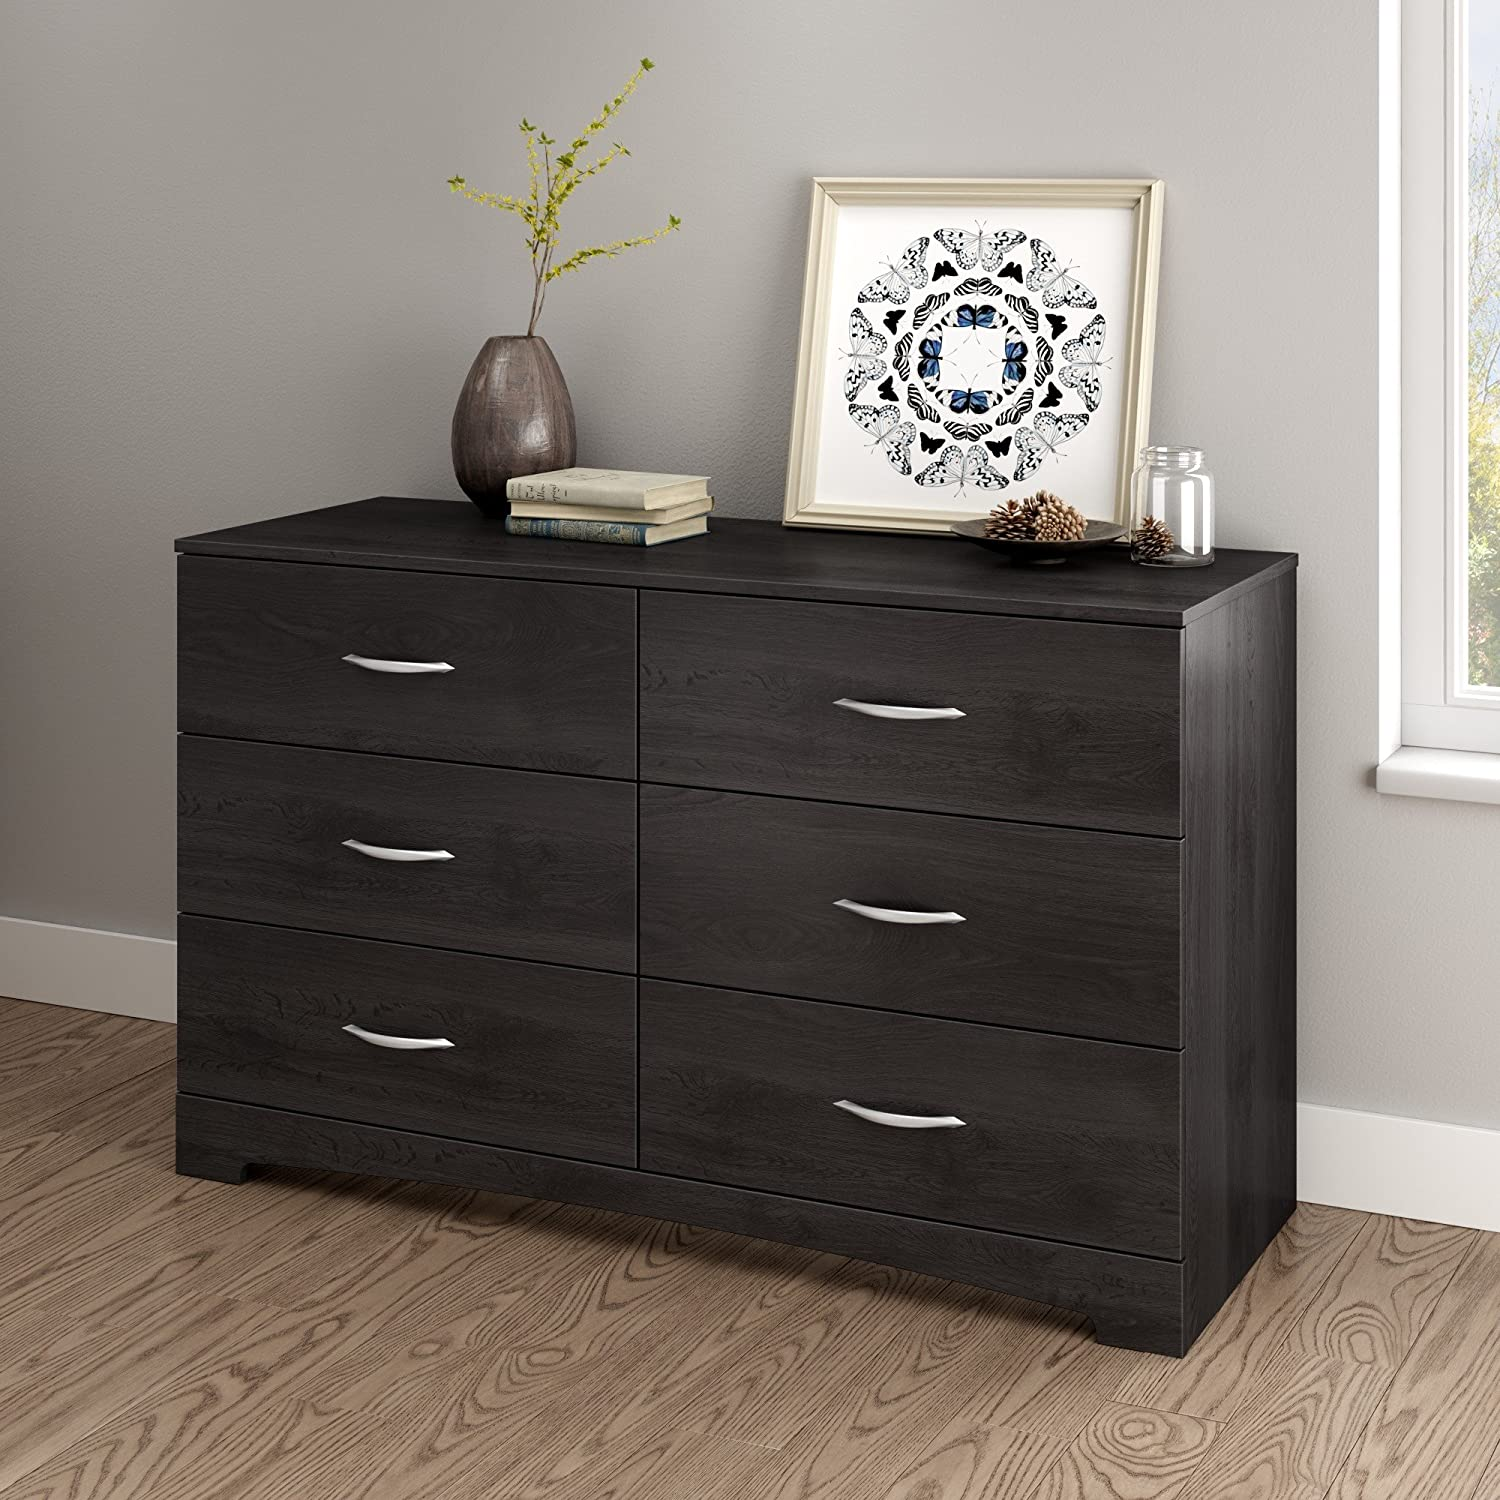 Amazon com south shore step one 6 drawer double dresser gray oak with matte nickel handles kitchen dining